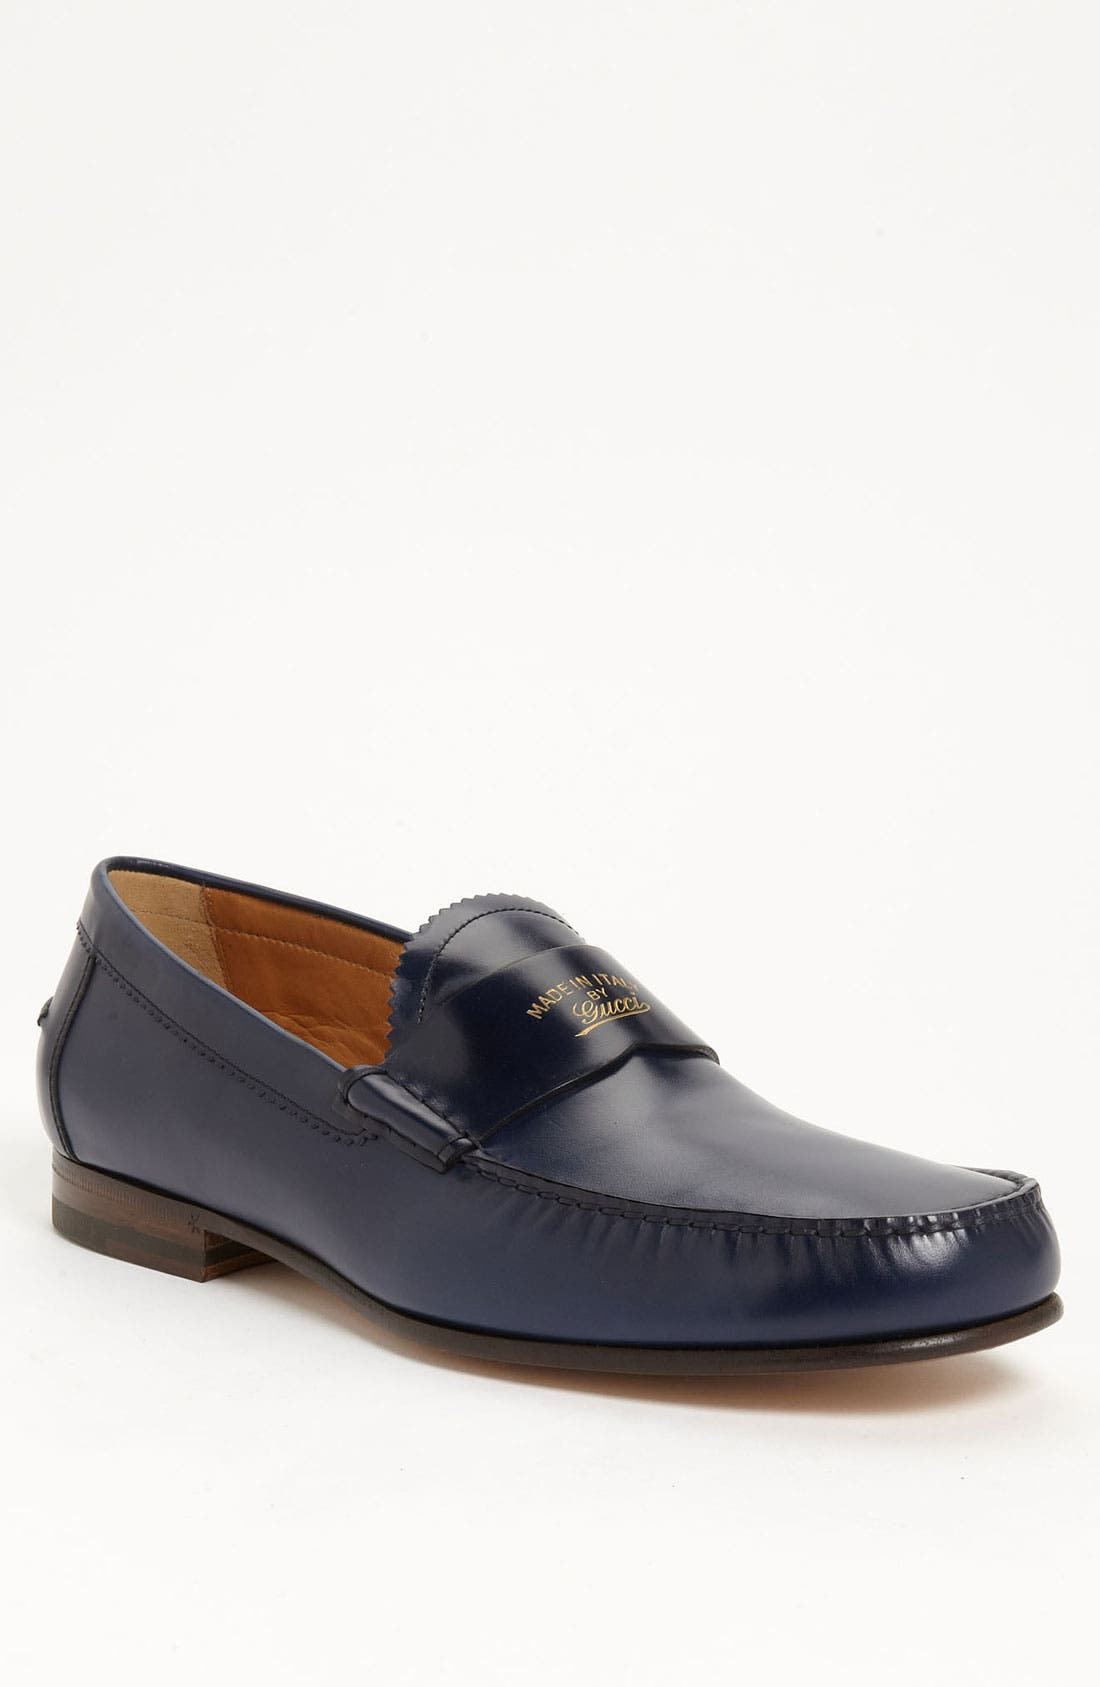 Alternate Image 1 Selected - Gucci 'Uden' Loafer